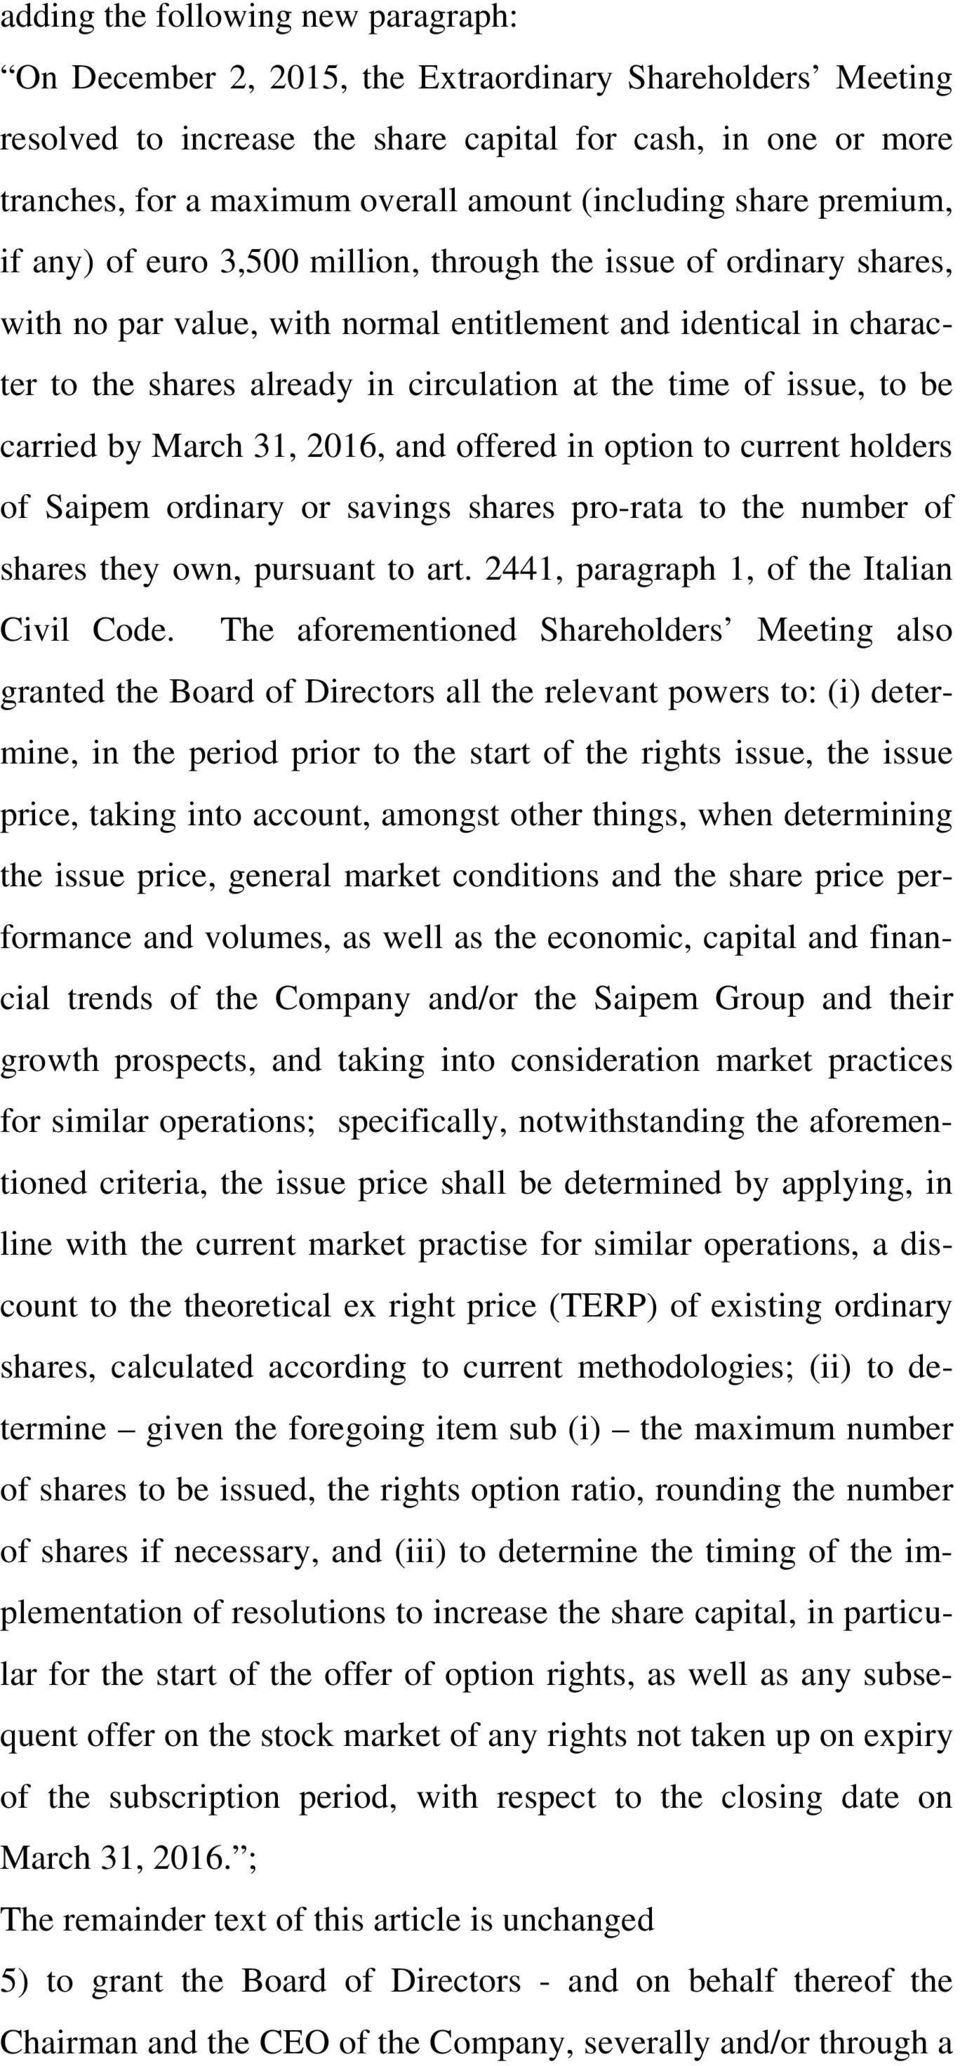 circulation at the time of issue, to be carried by March 31, 2016, and offered in option to current holders of Saipem ordinary or savings shares pro-rata to the number of shares they own, pursuant to